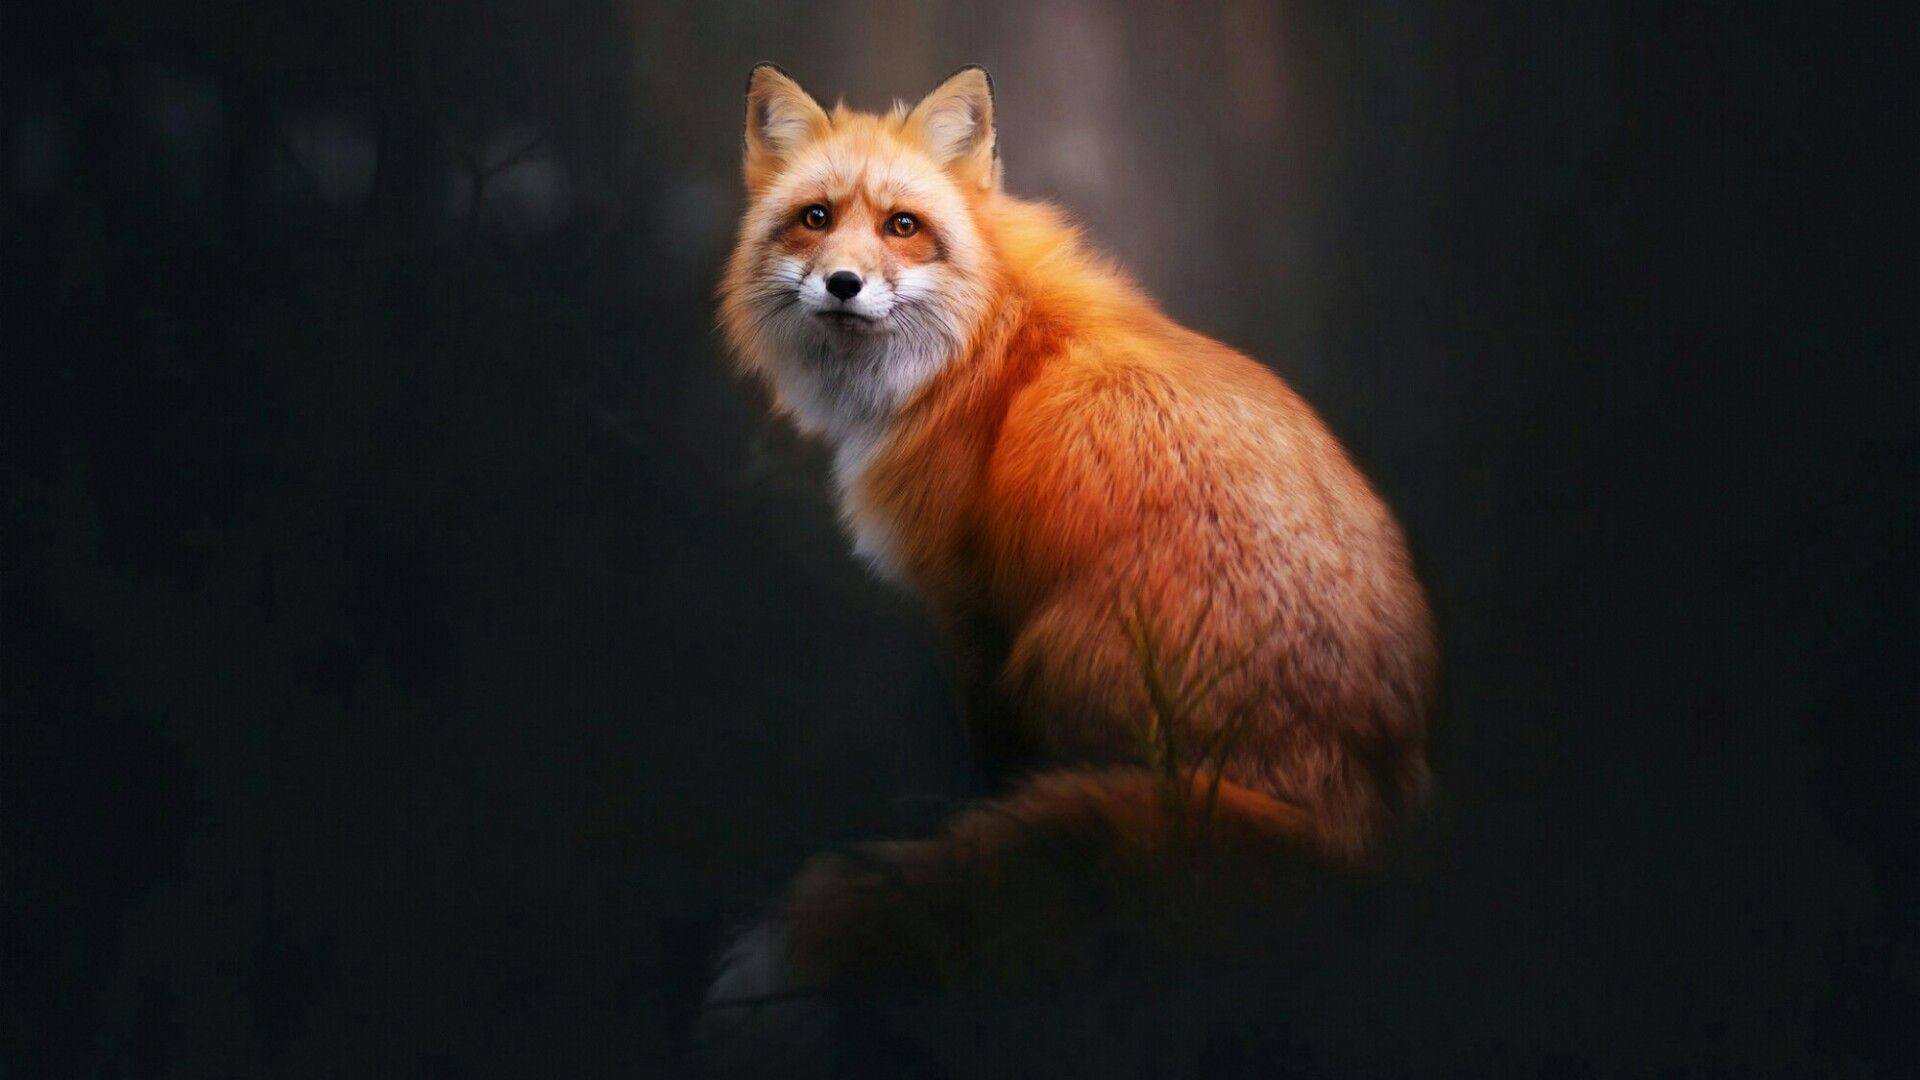 Red Fox Wallpaper Wallpaper Studio 10 Tens of